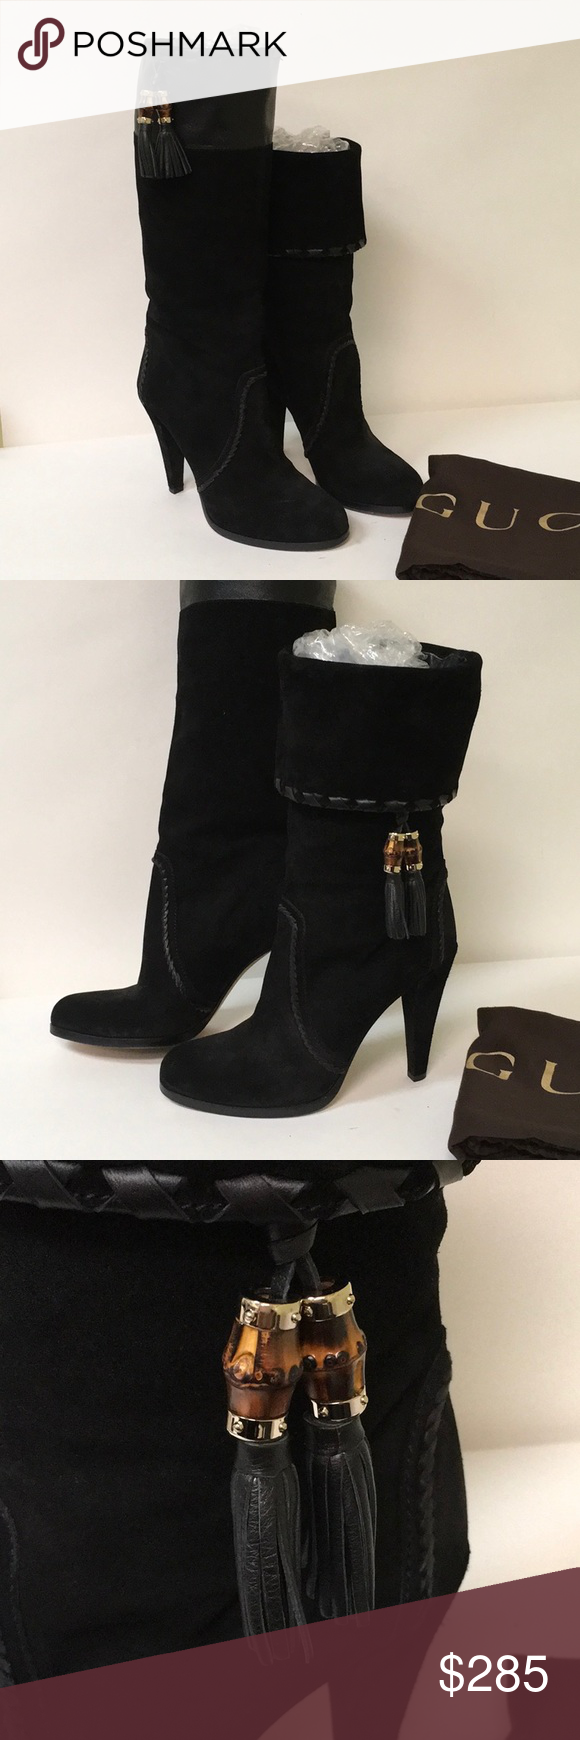 c6bf3c4bafbb Spotted while shopping on Poshmark  Gucci Suede Bamboo Knee High Tassel  Boots!  poshmark  fashion  shopping  style  Gucci  Shoes